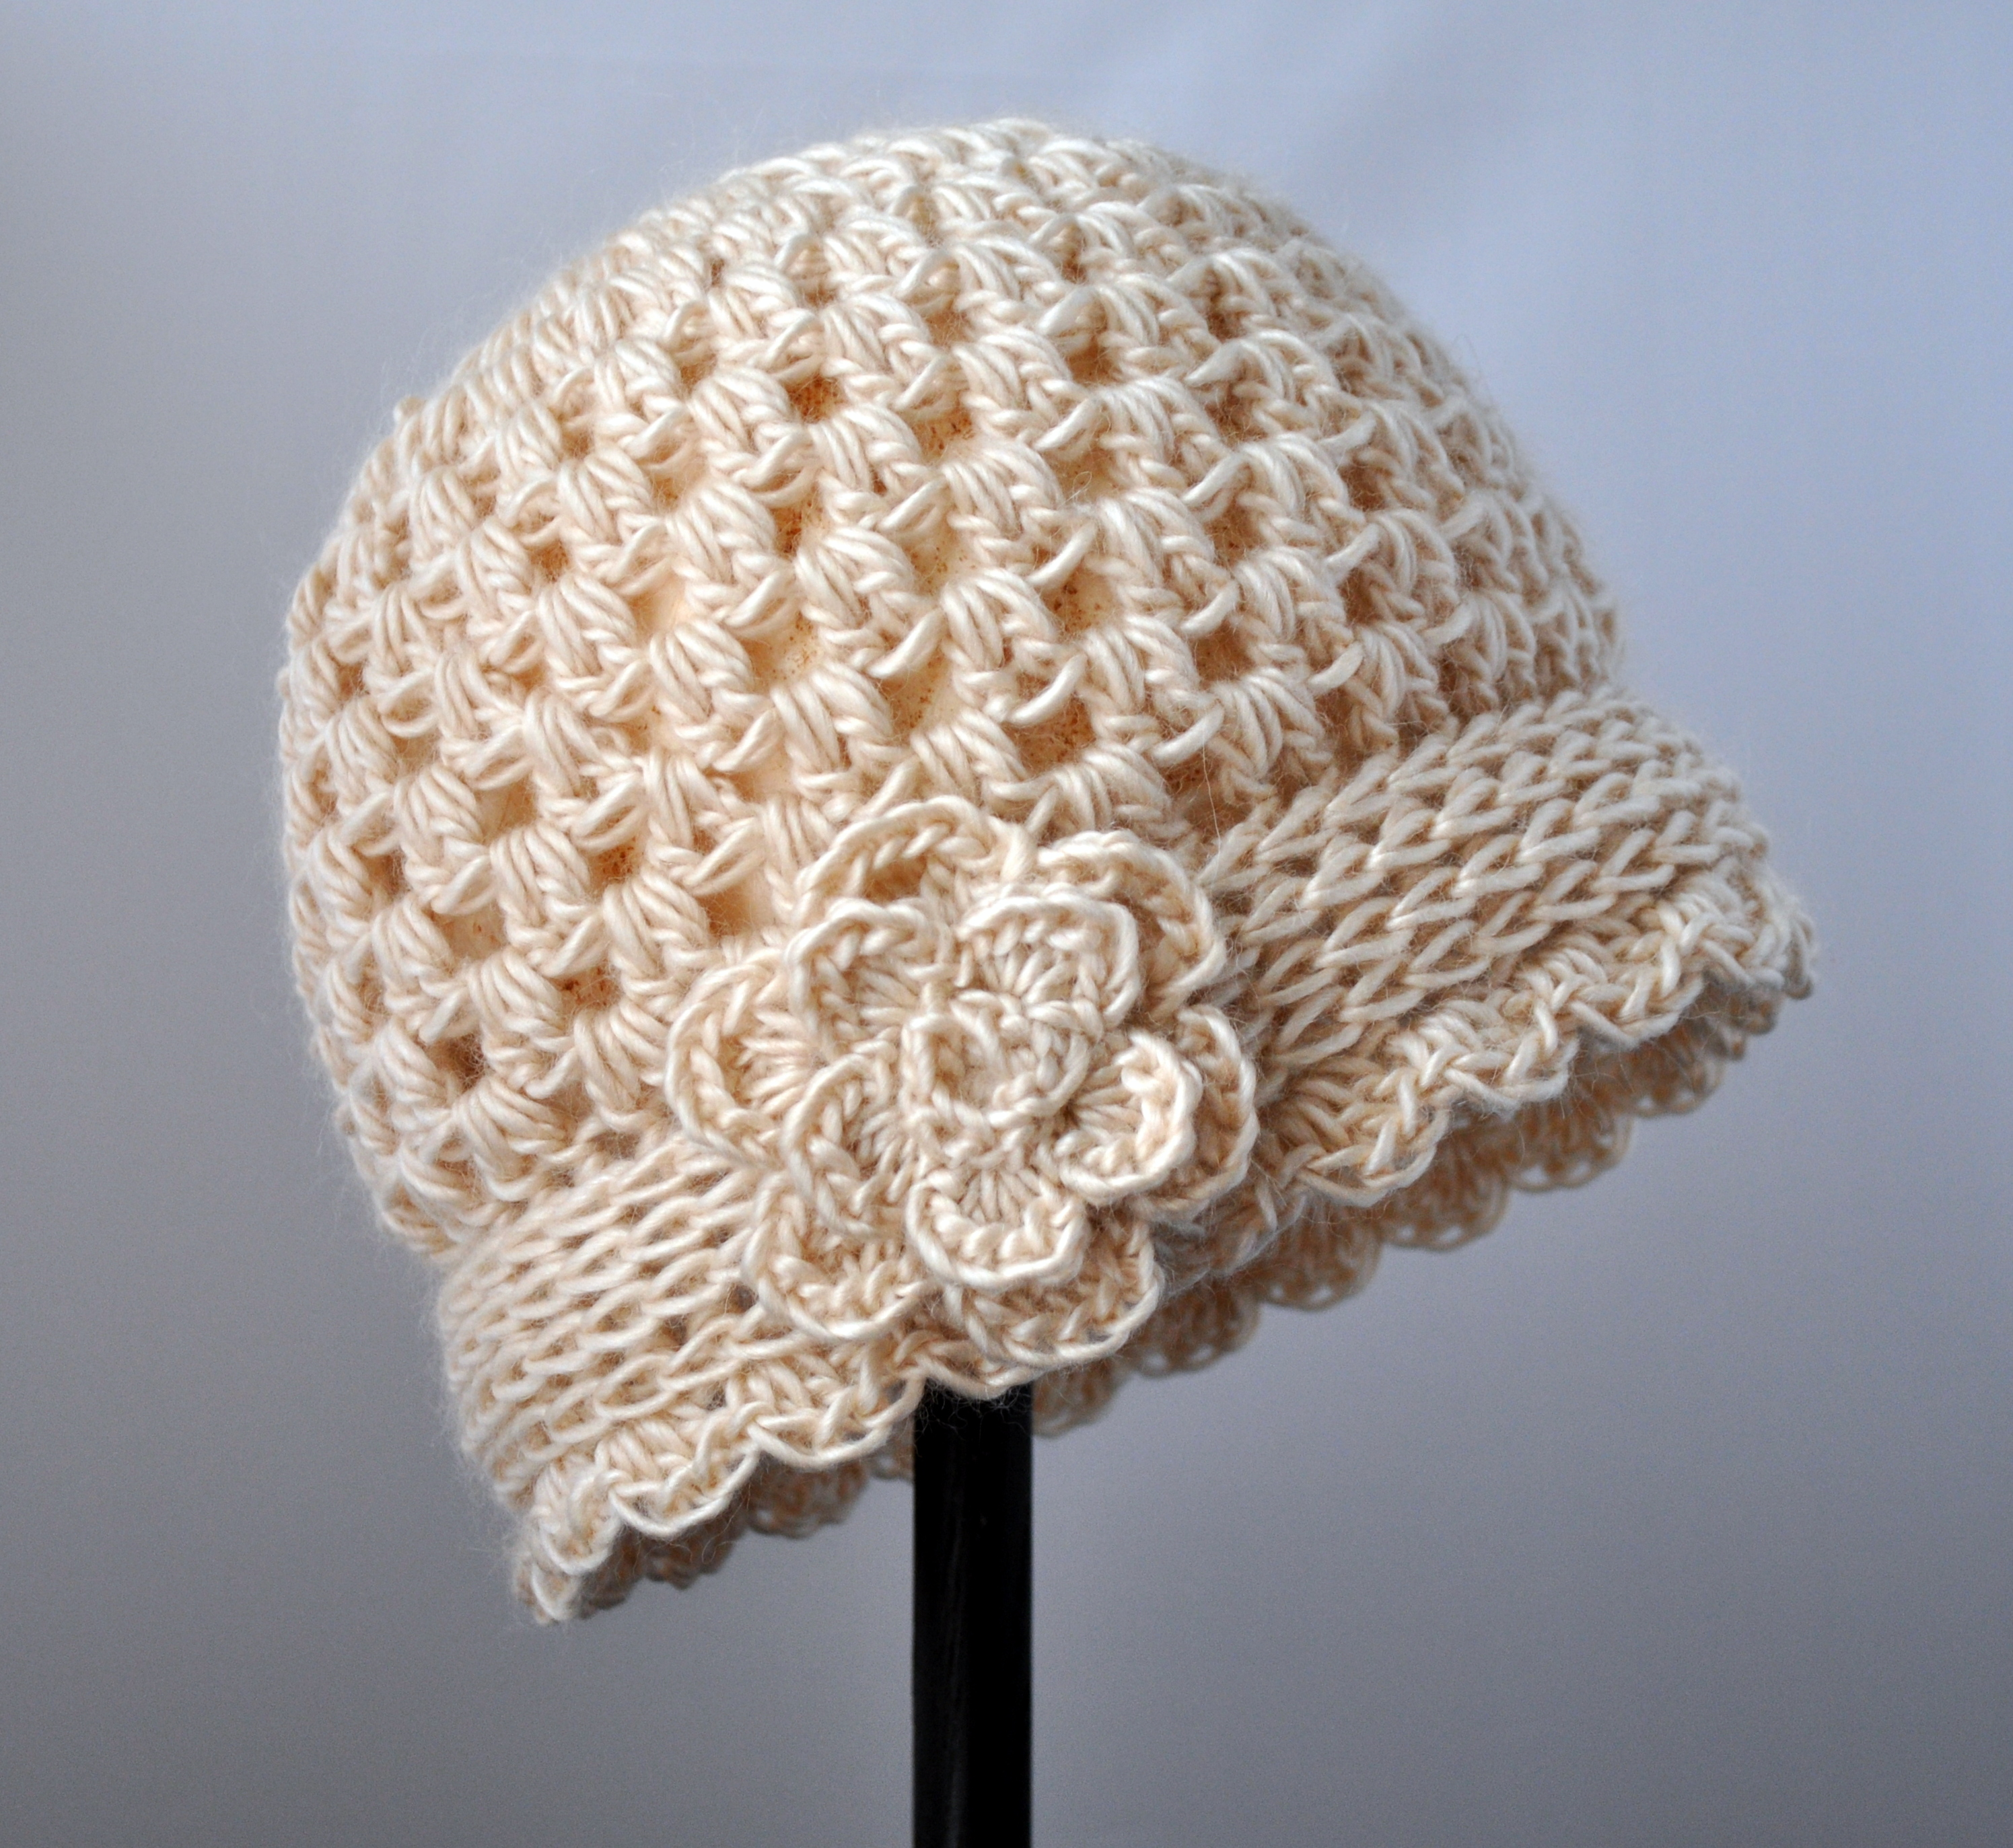 Crochet Patterns Images : Crochet Patterns Classy Crochet